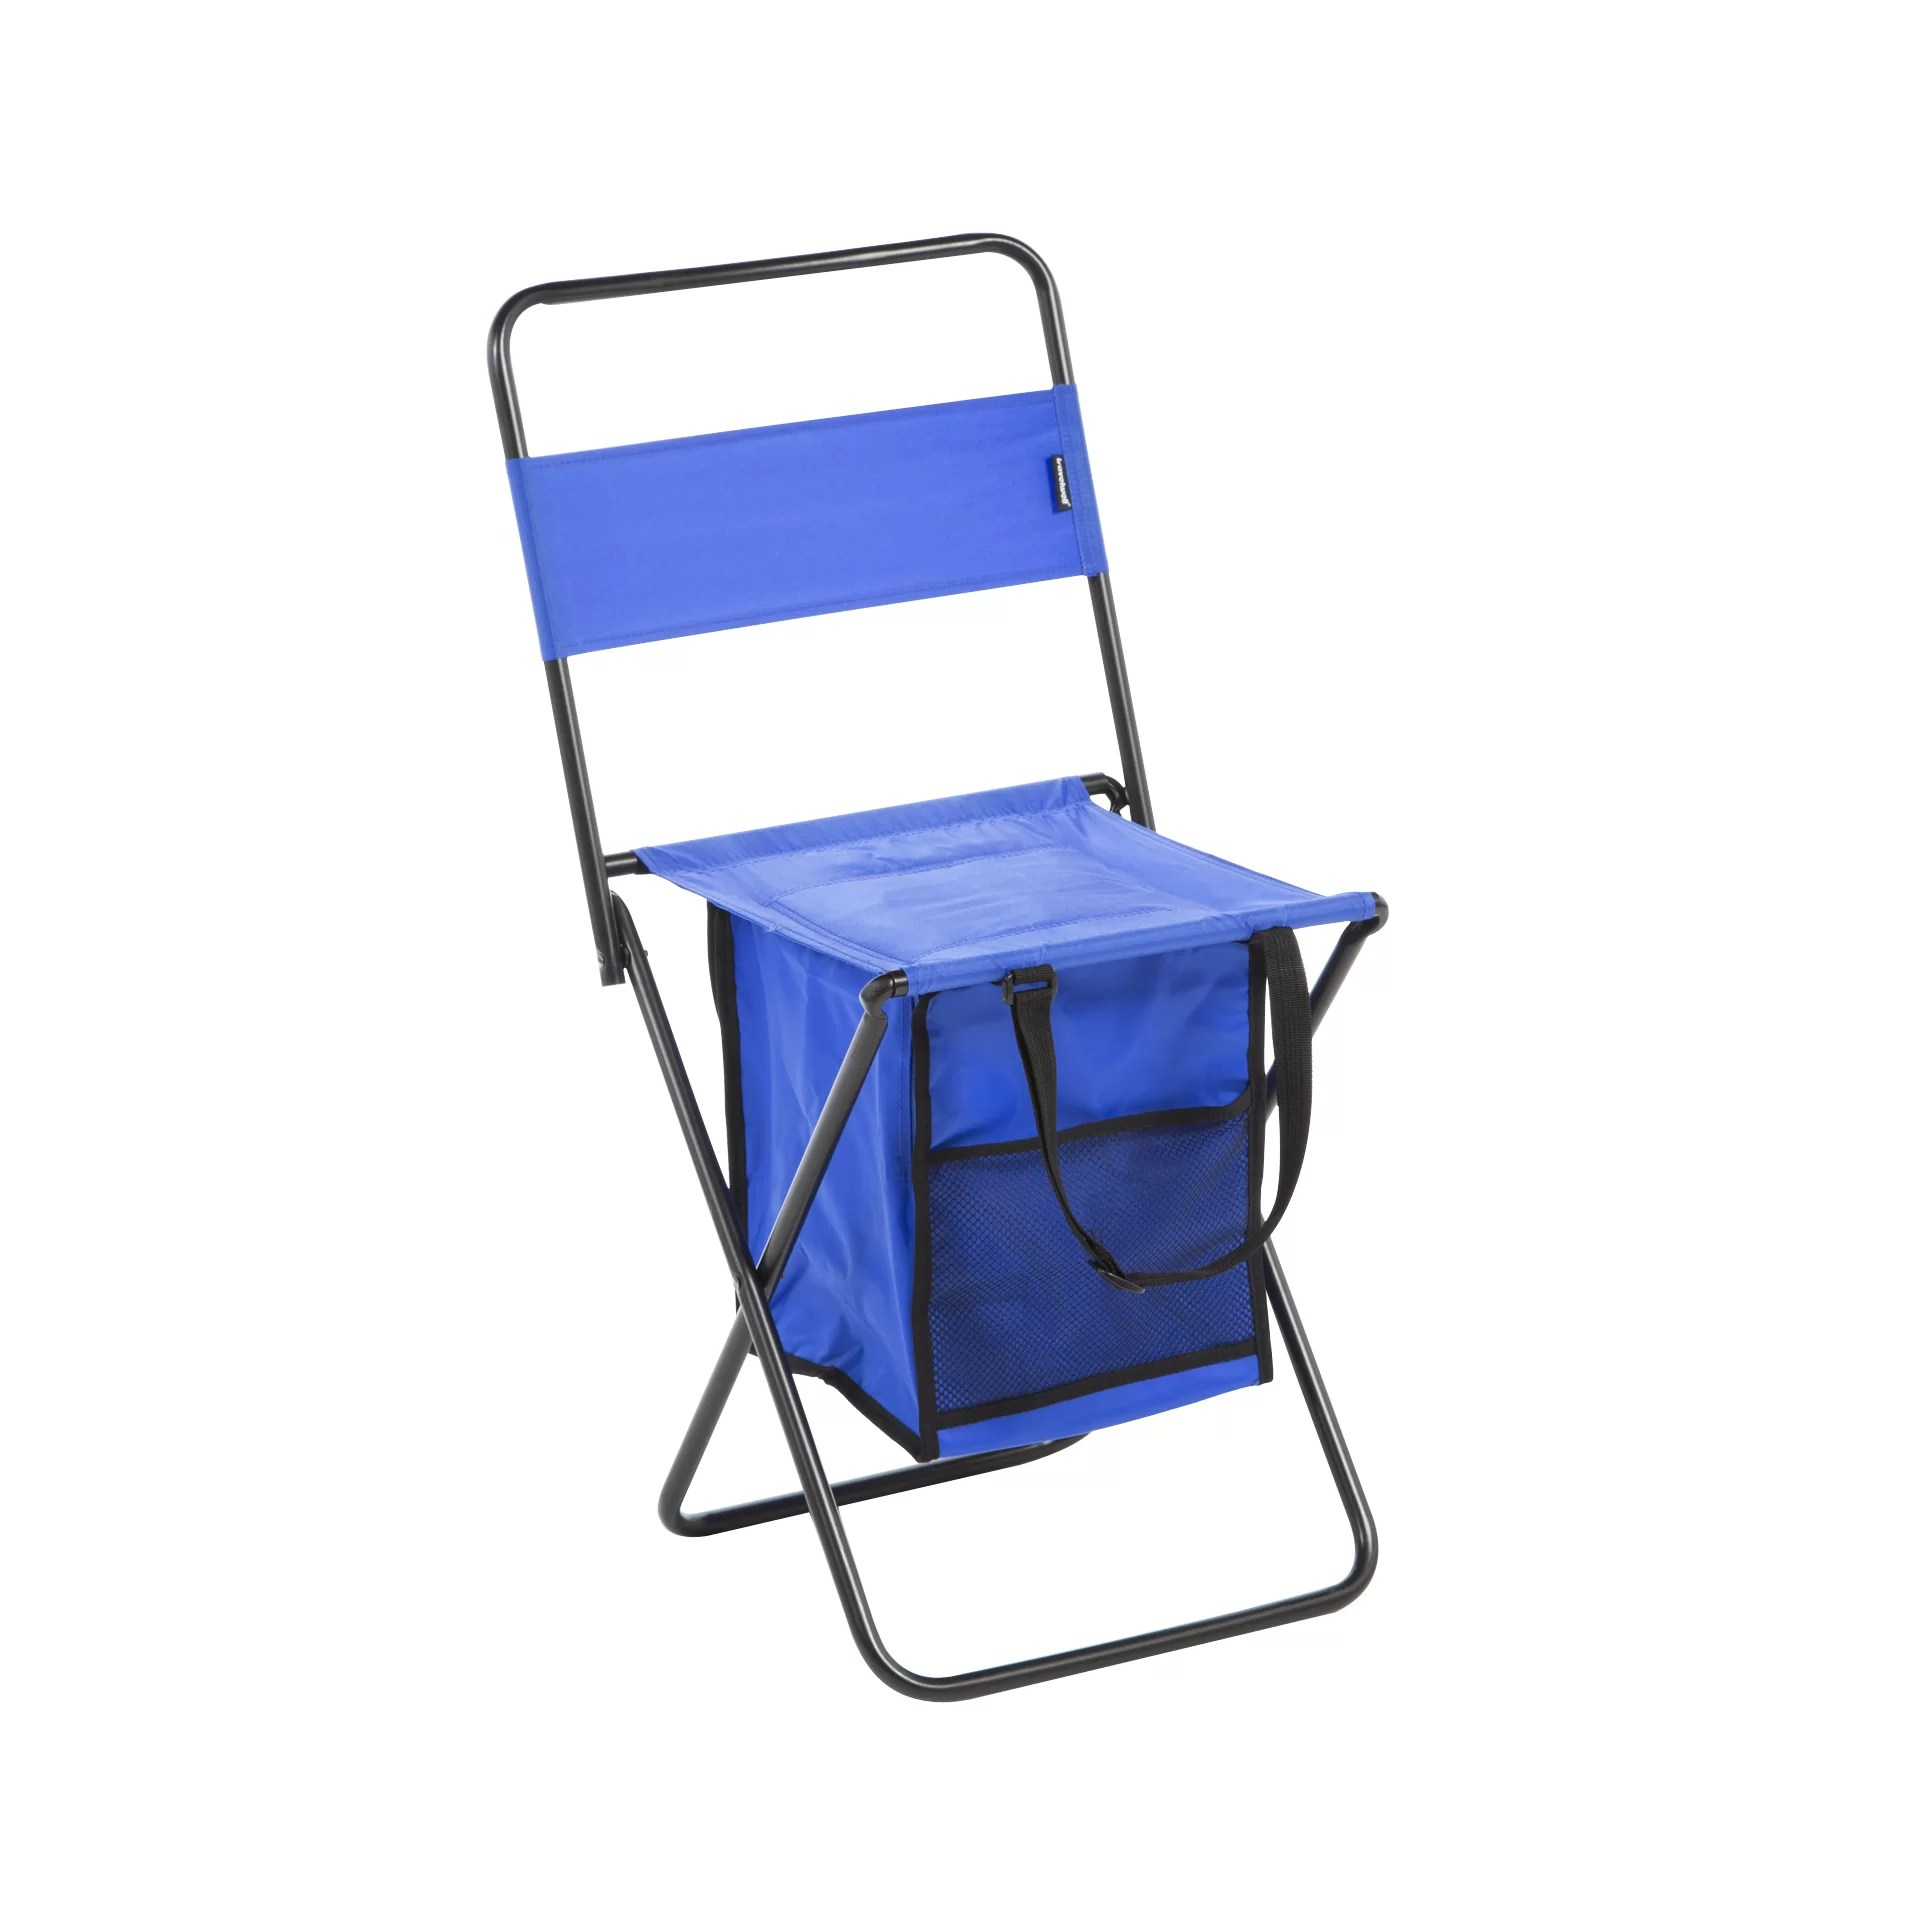 Chair Cooler Symple Stuff Folding Chair With Cooler And Reviews Wayfair